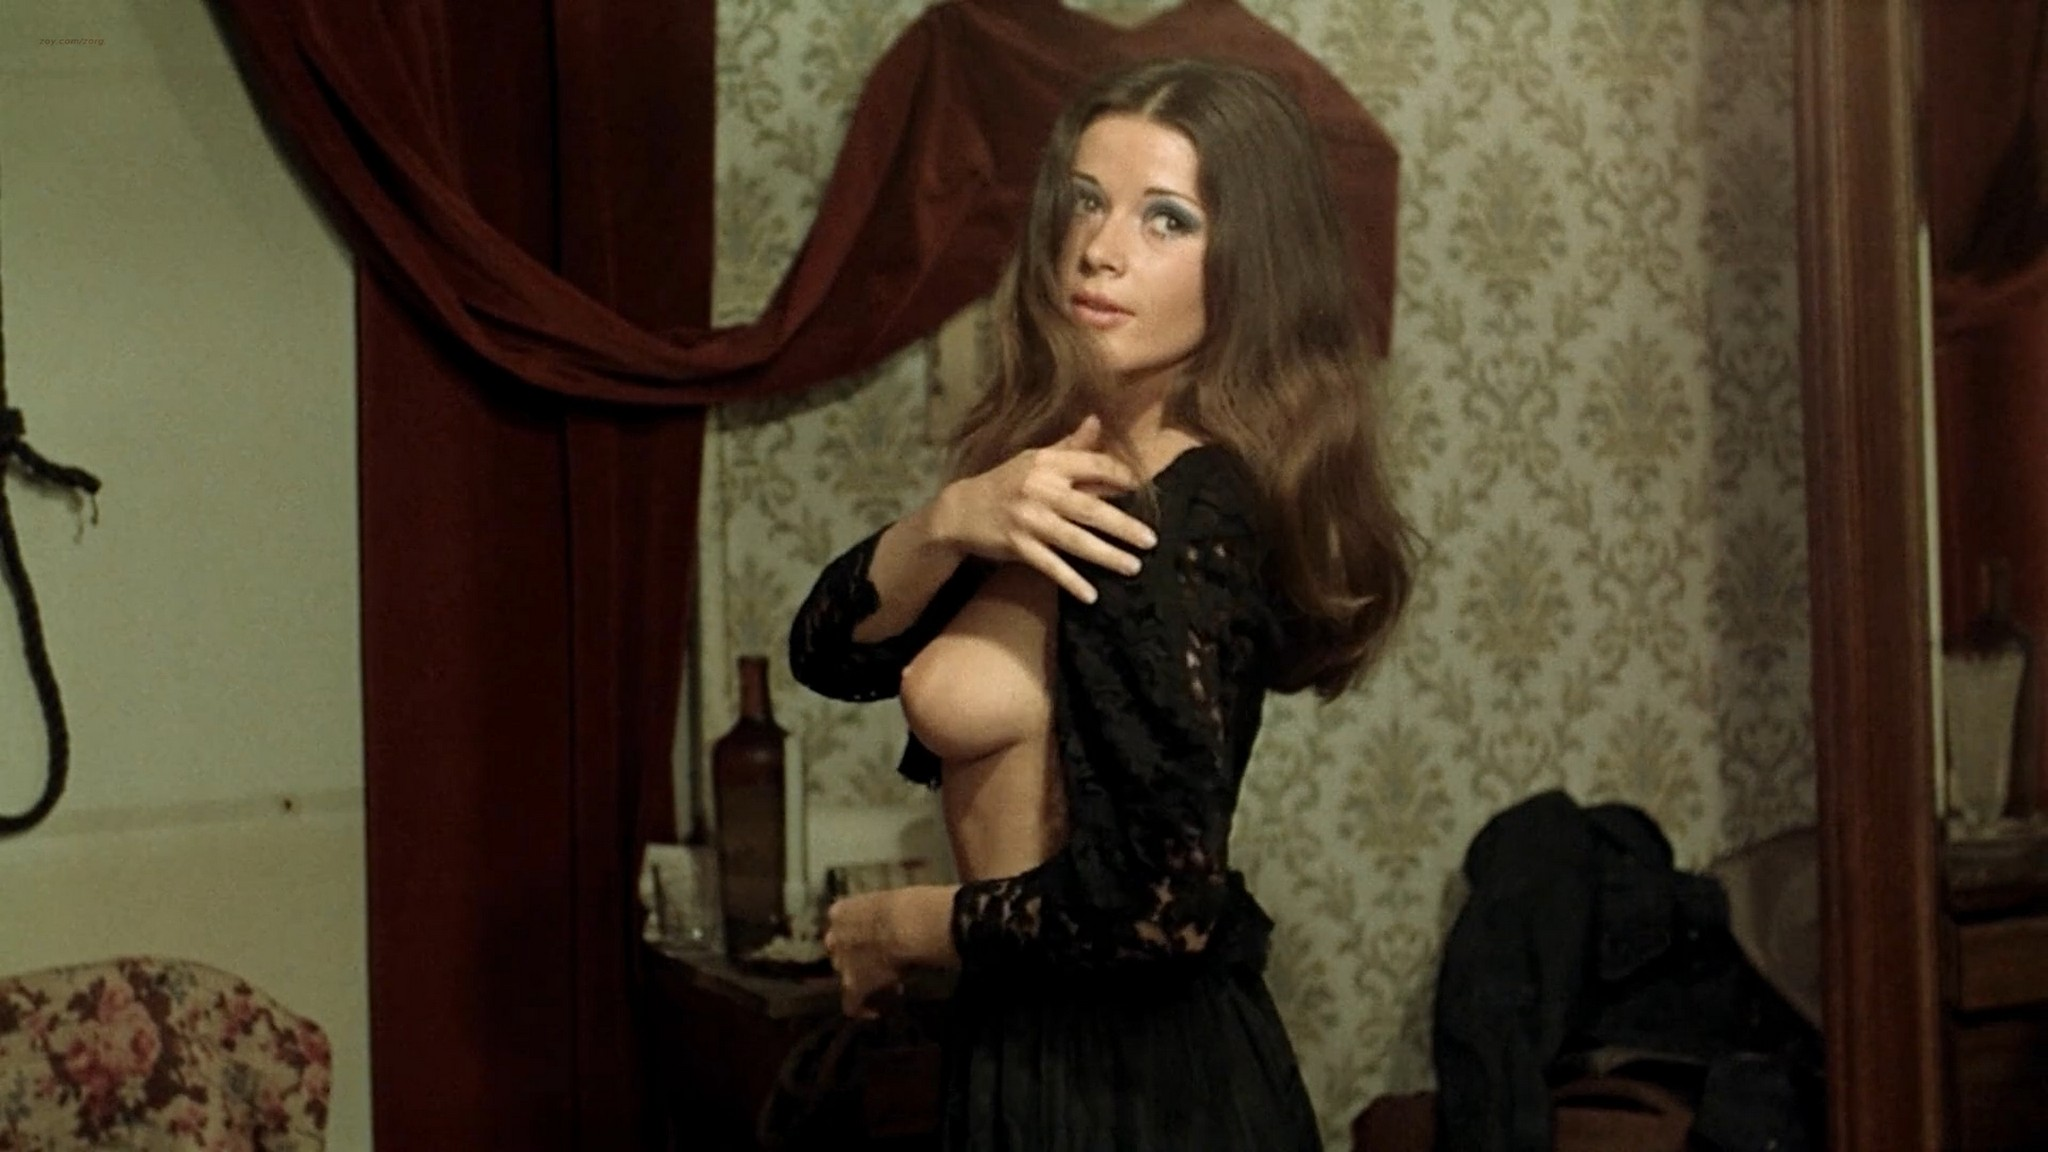 Joelle Coeur nude full frontal and others nude – The Demoniacs 1974 HD 1080p BluRay005